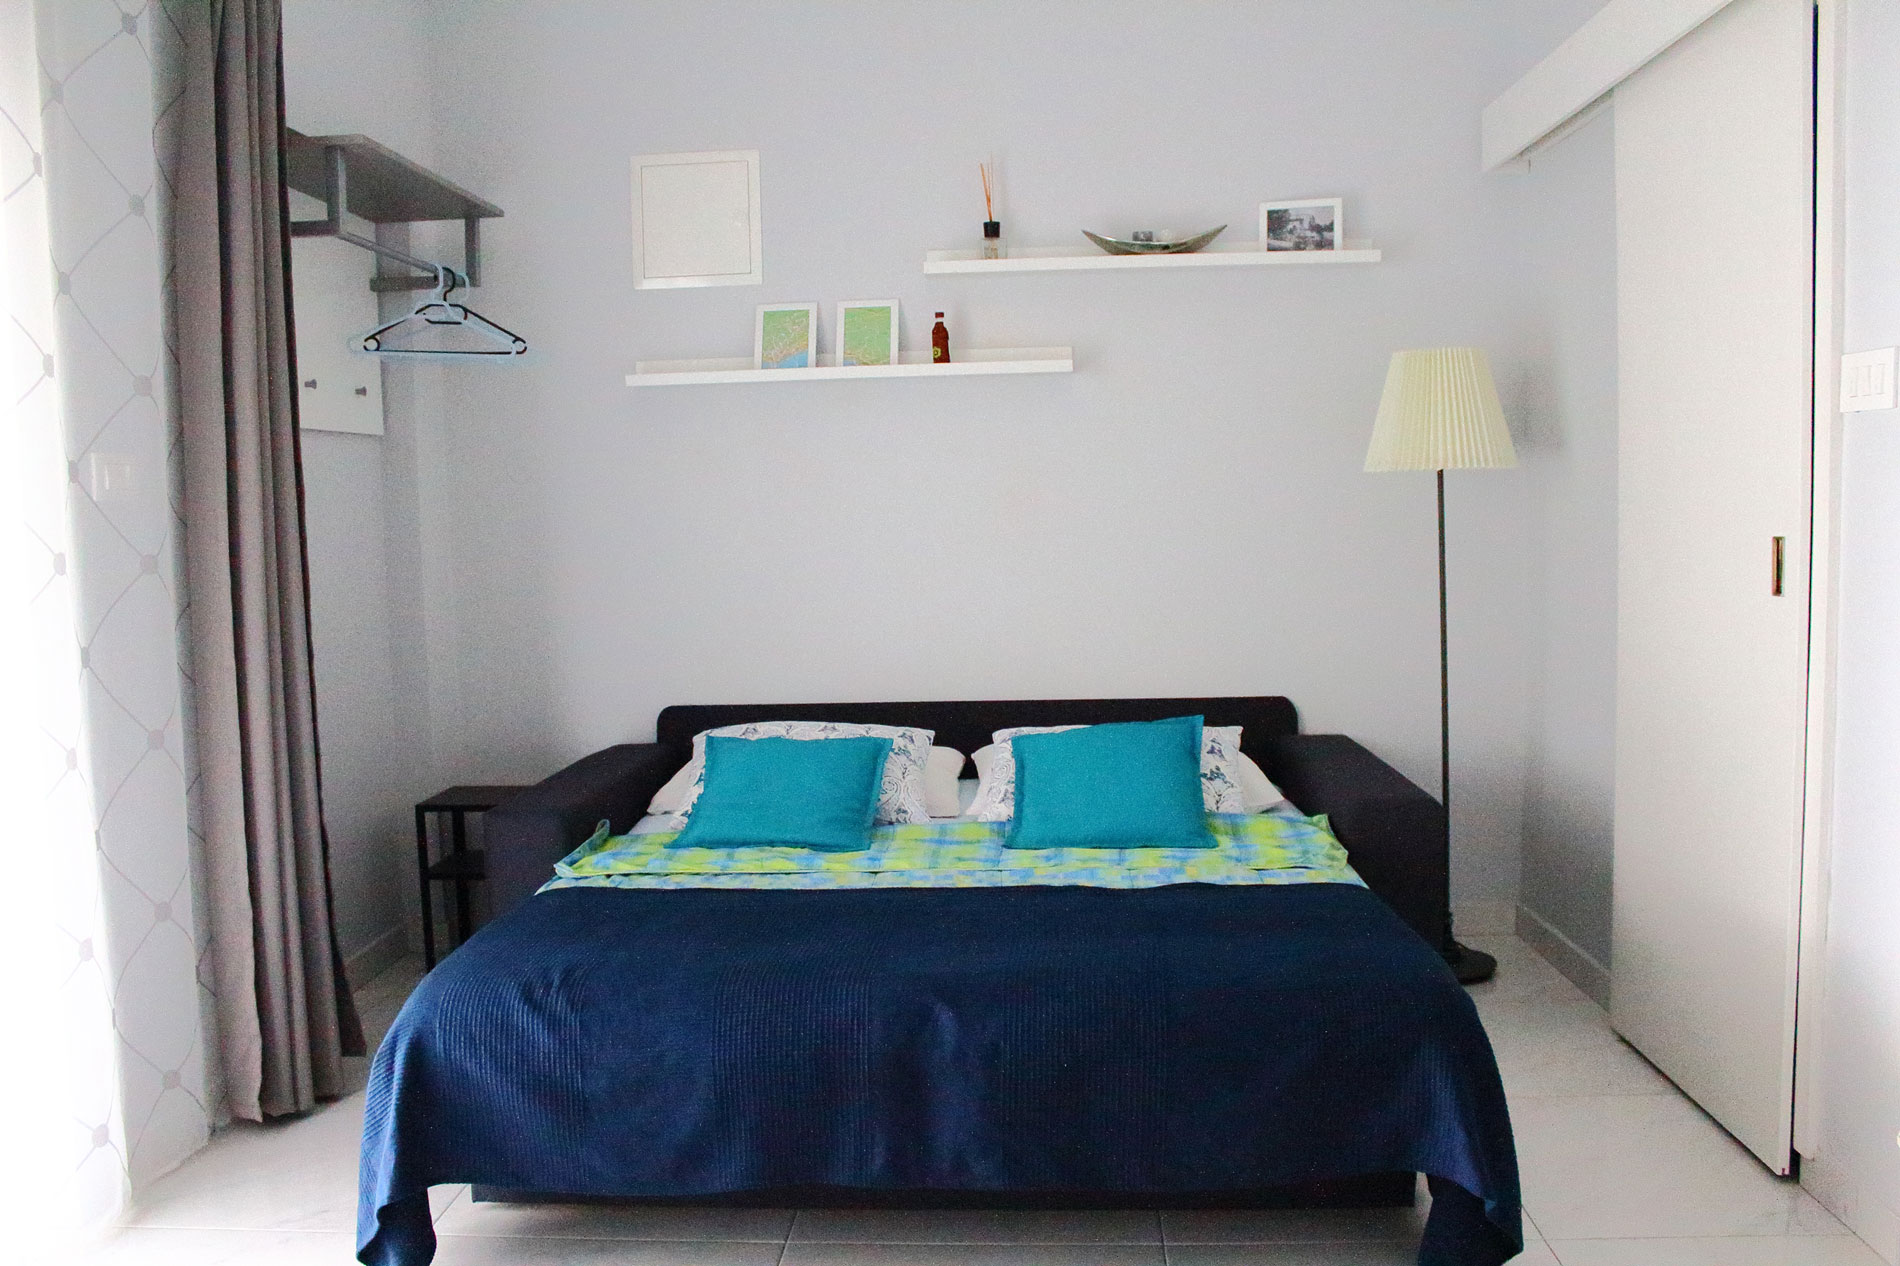 Apartments Basan Lovran-Opatija, apartment 2+2 extra bed